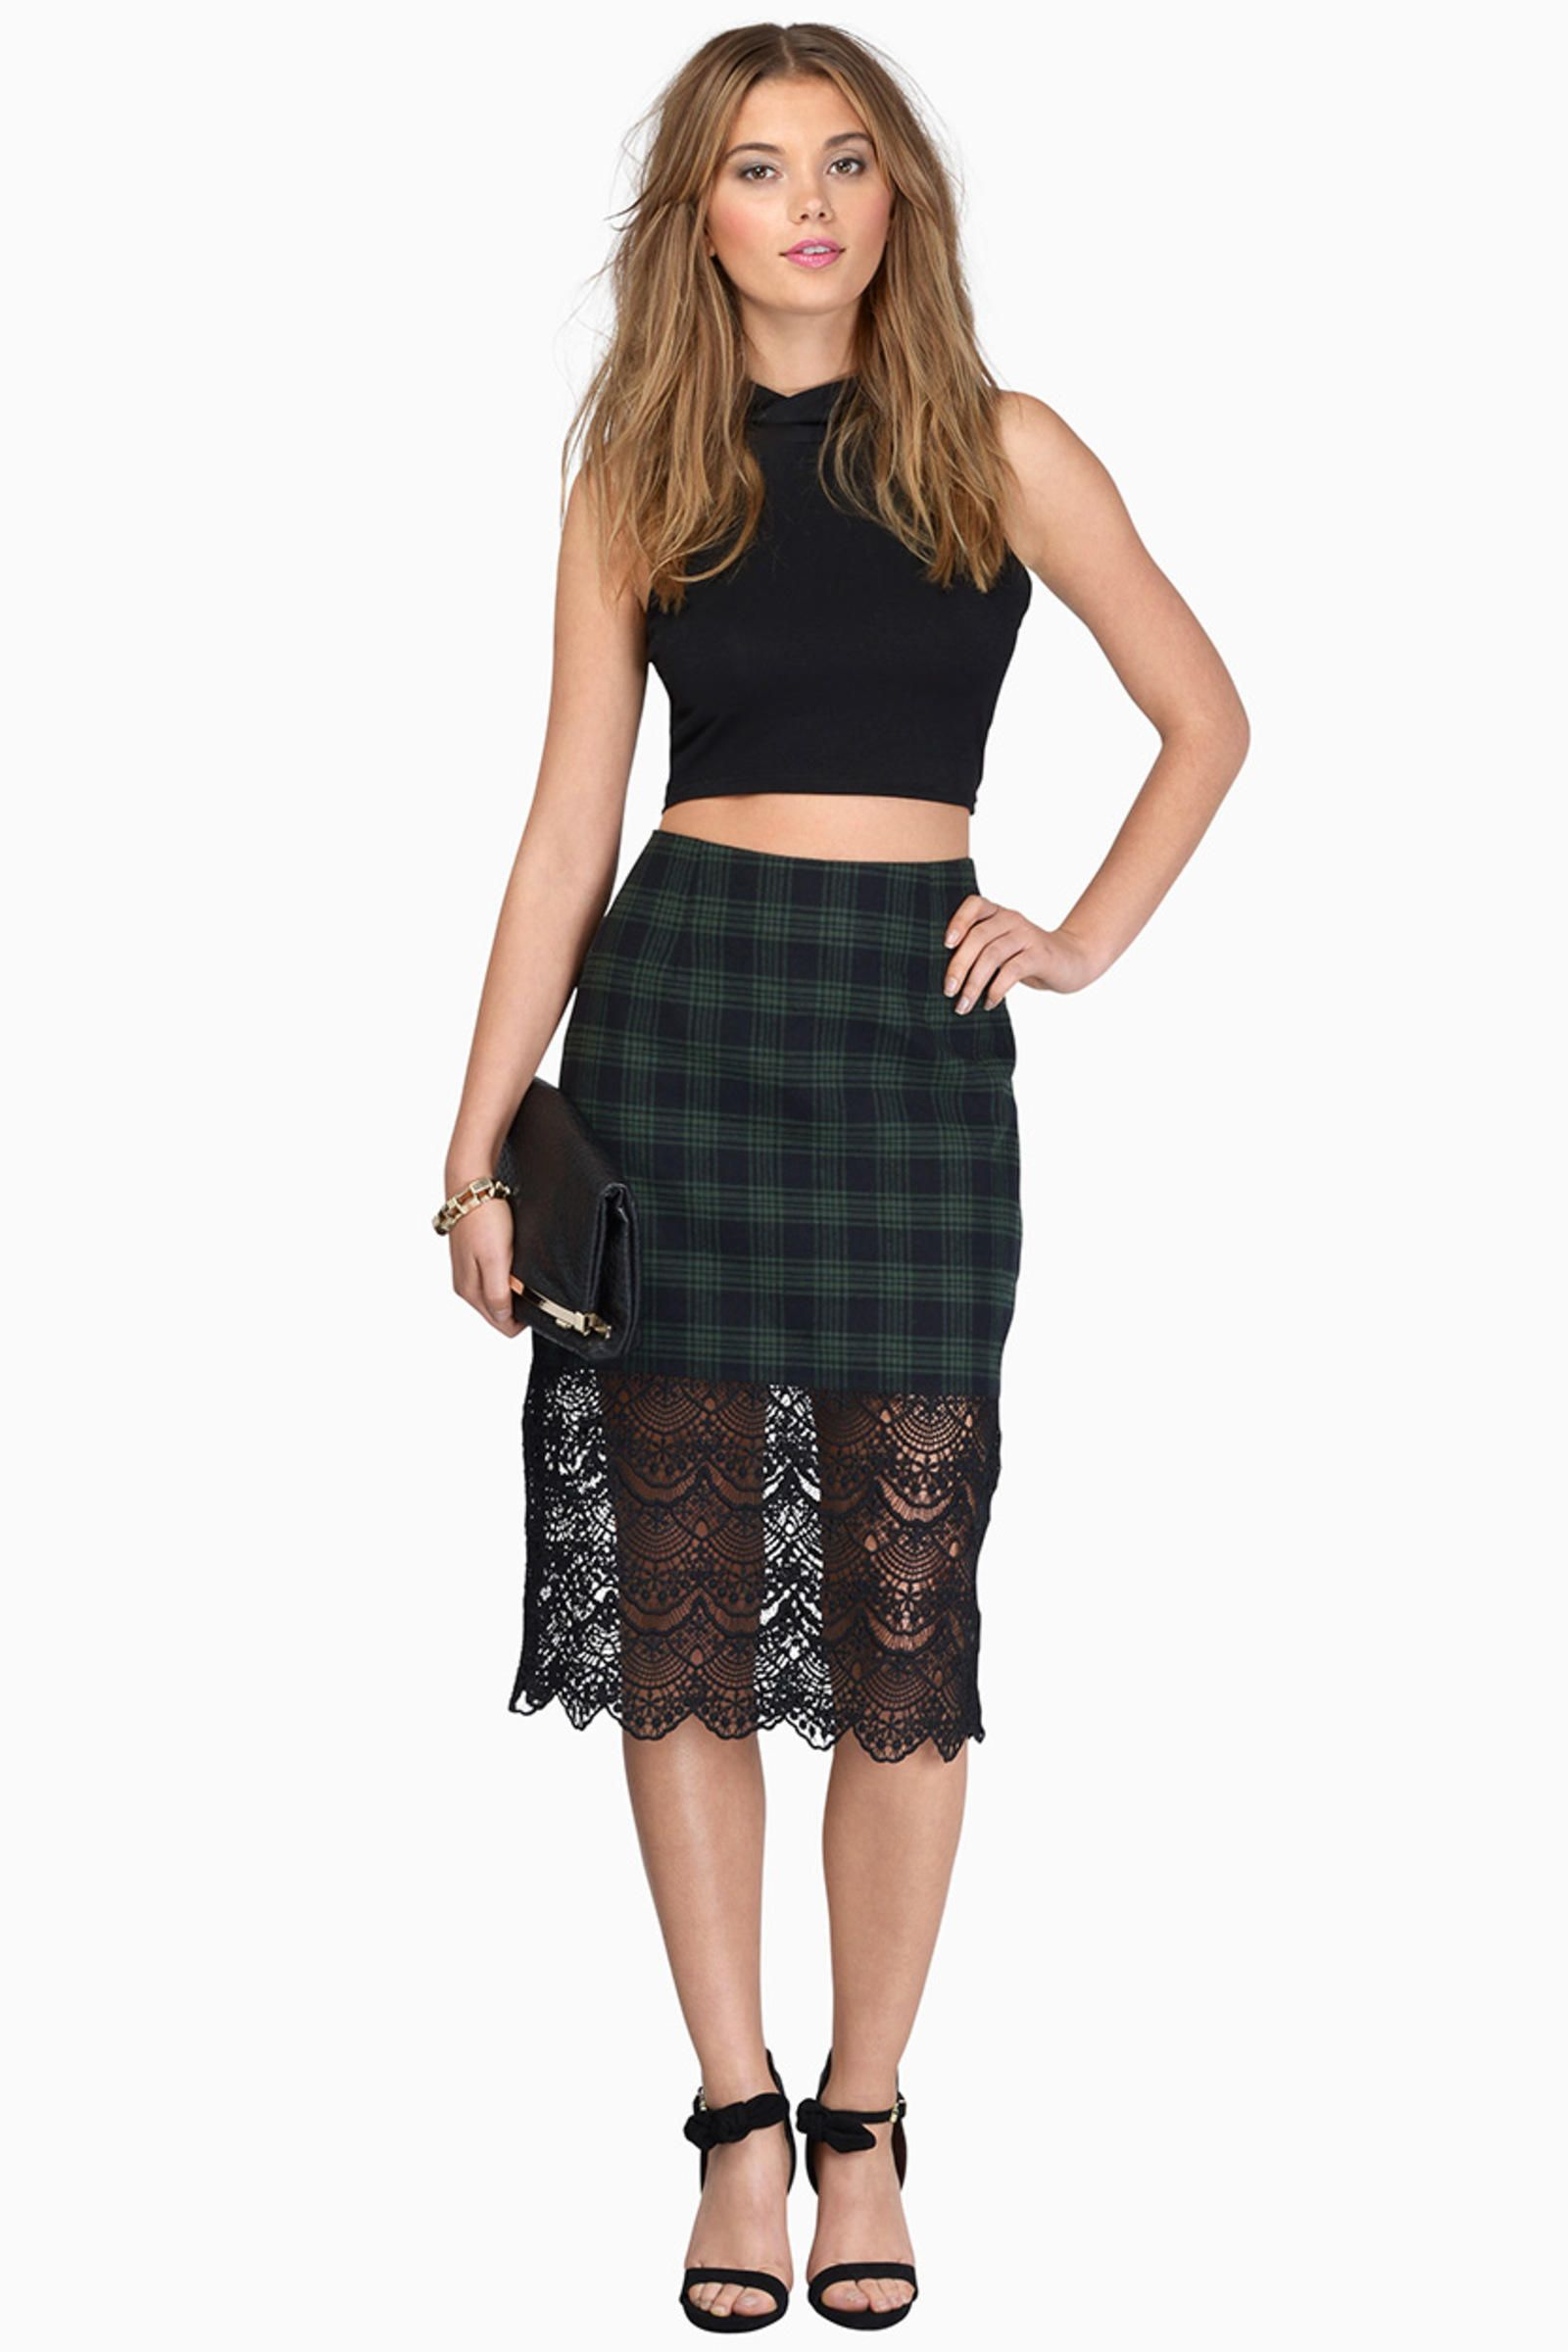 Nothing Personal Skirt | Skirts, Fashion outfits, Night ...